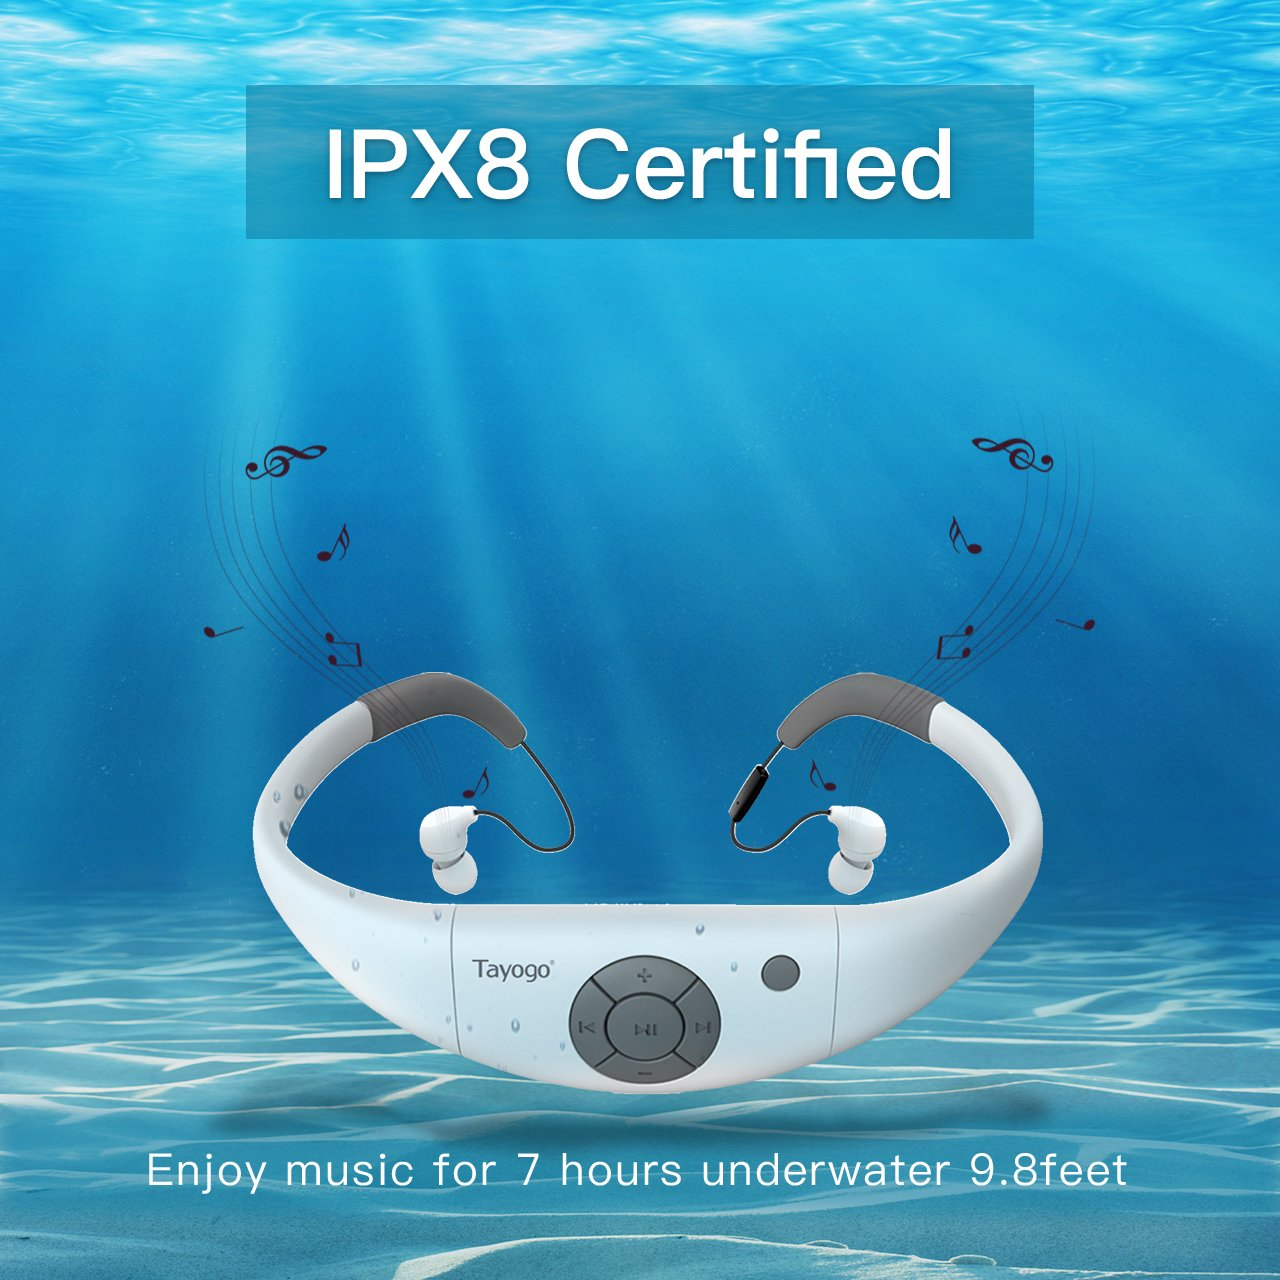 Tayogo Waterproof MP3 player bluetooth swimming Headphones bluetooth 8GB waterproof mp3 player 3M Underwater IPX8 waterproof FM radio for Running Swimming Riding Walking SPA and other Water Sport